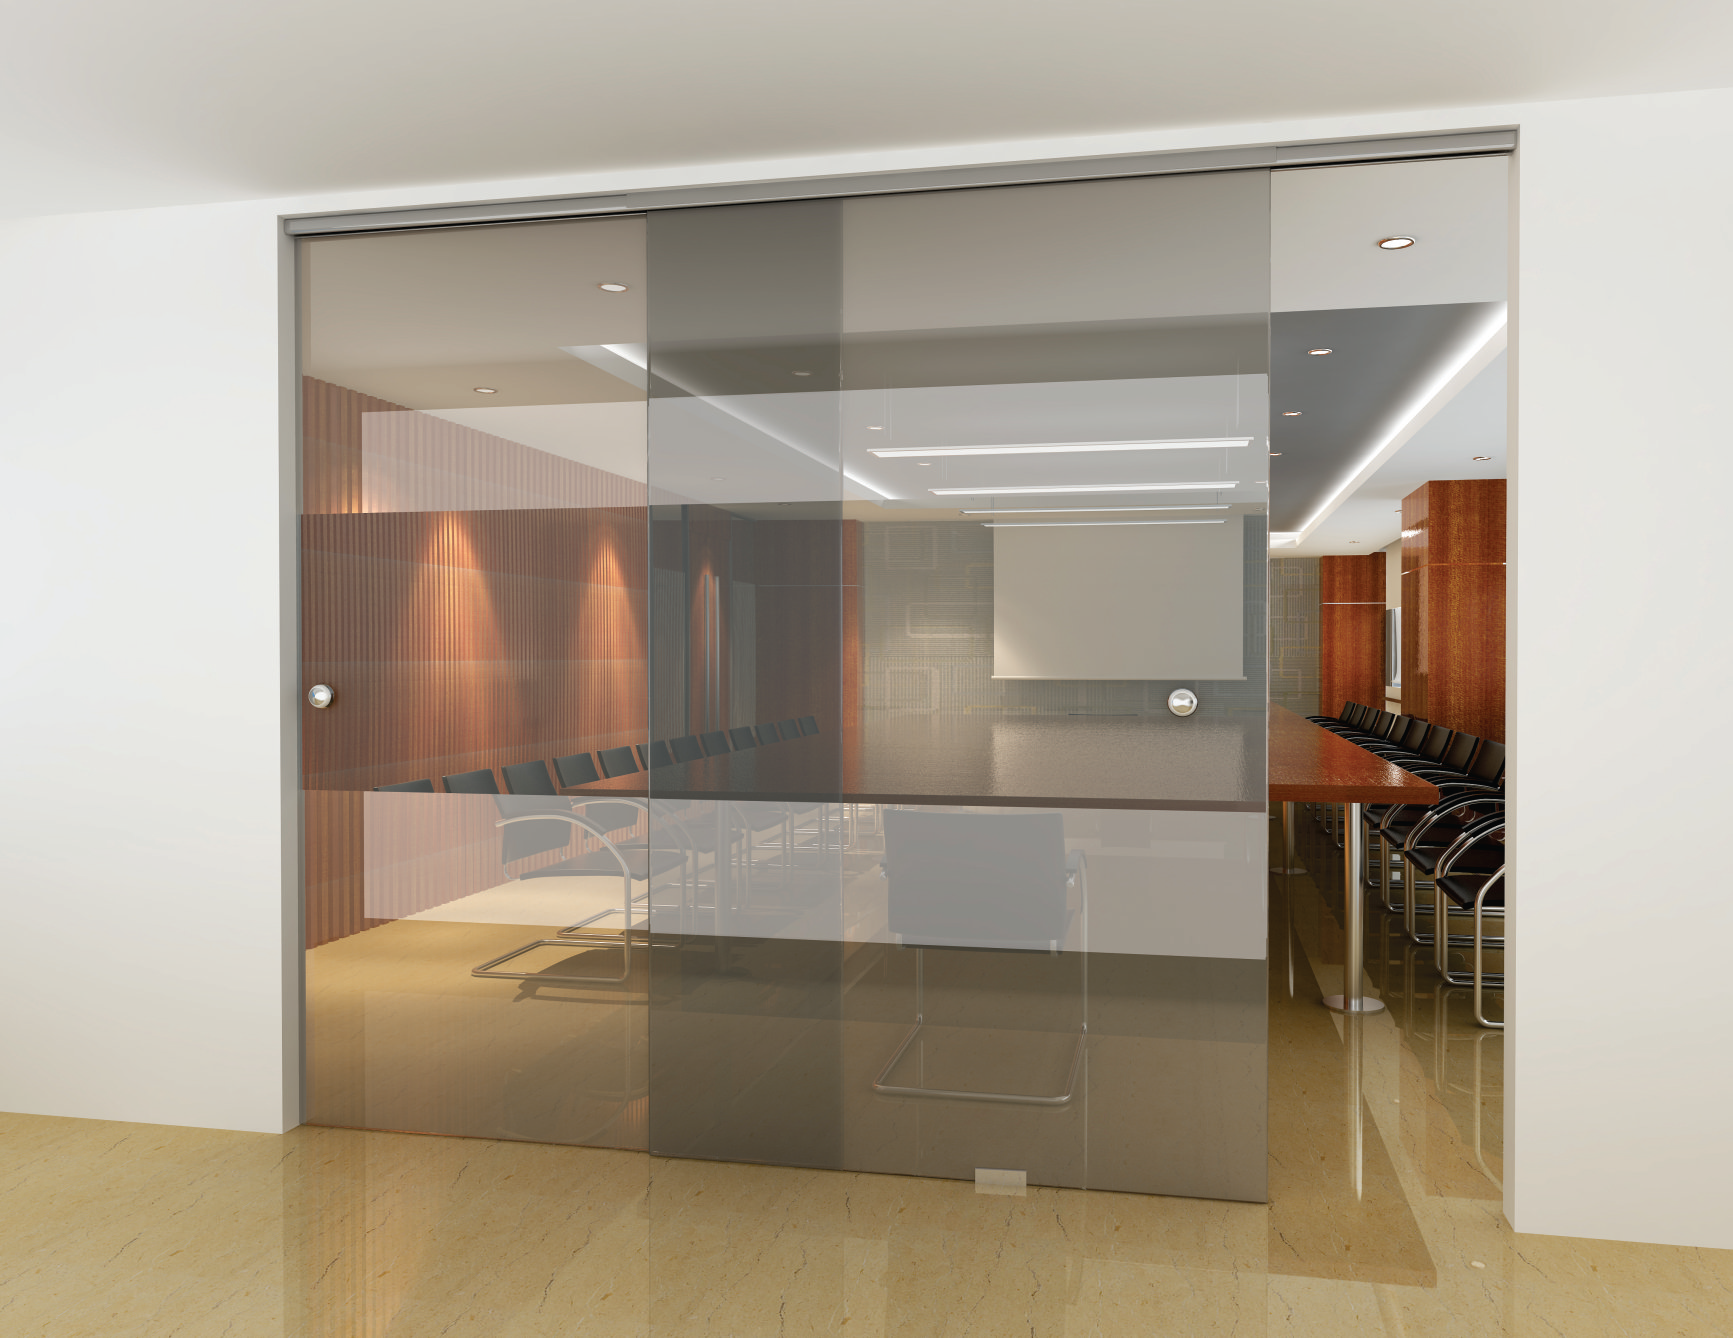 Design 85 Sv Sv 85 Sliding System 85 Kg Slido By Hafele Sliding Door Design Modern Sliding Doors Hafele